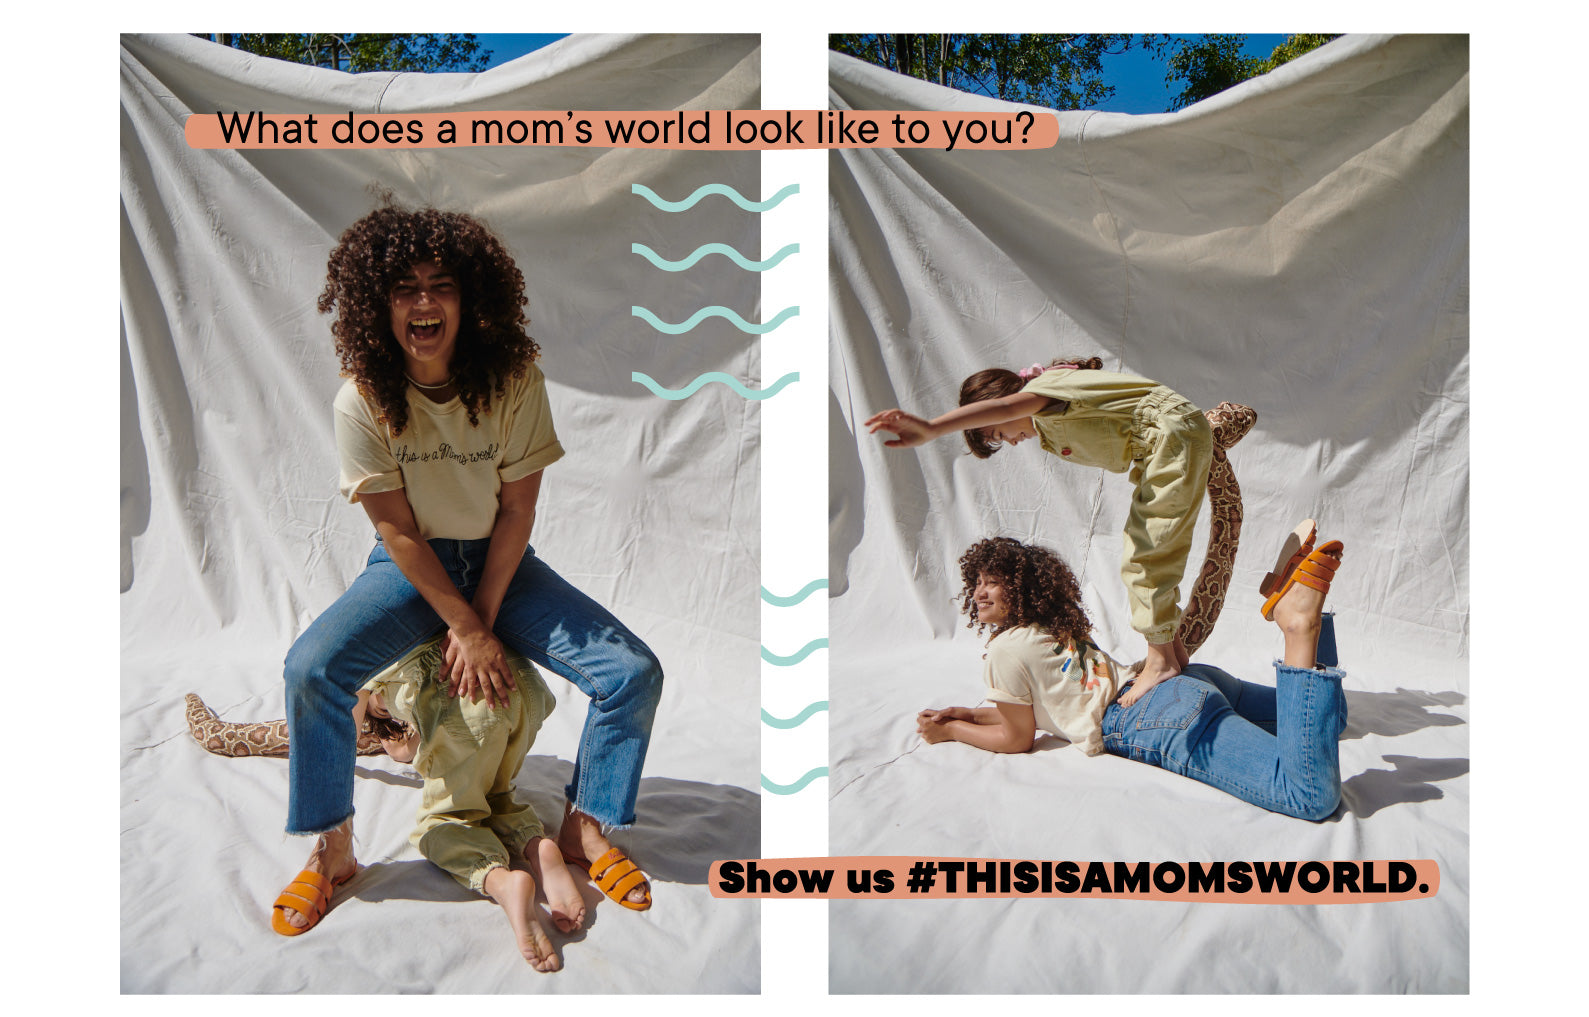 What does a mom's world look like to you? Show us #THISISAMOMSWORLD.